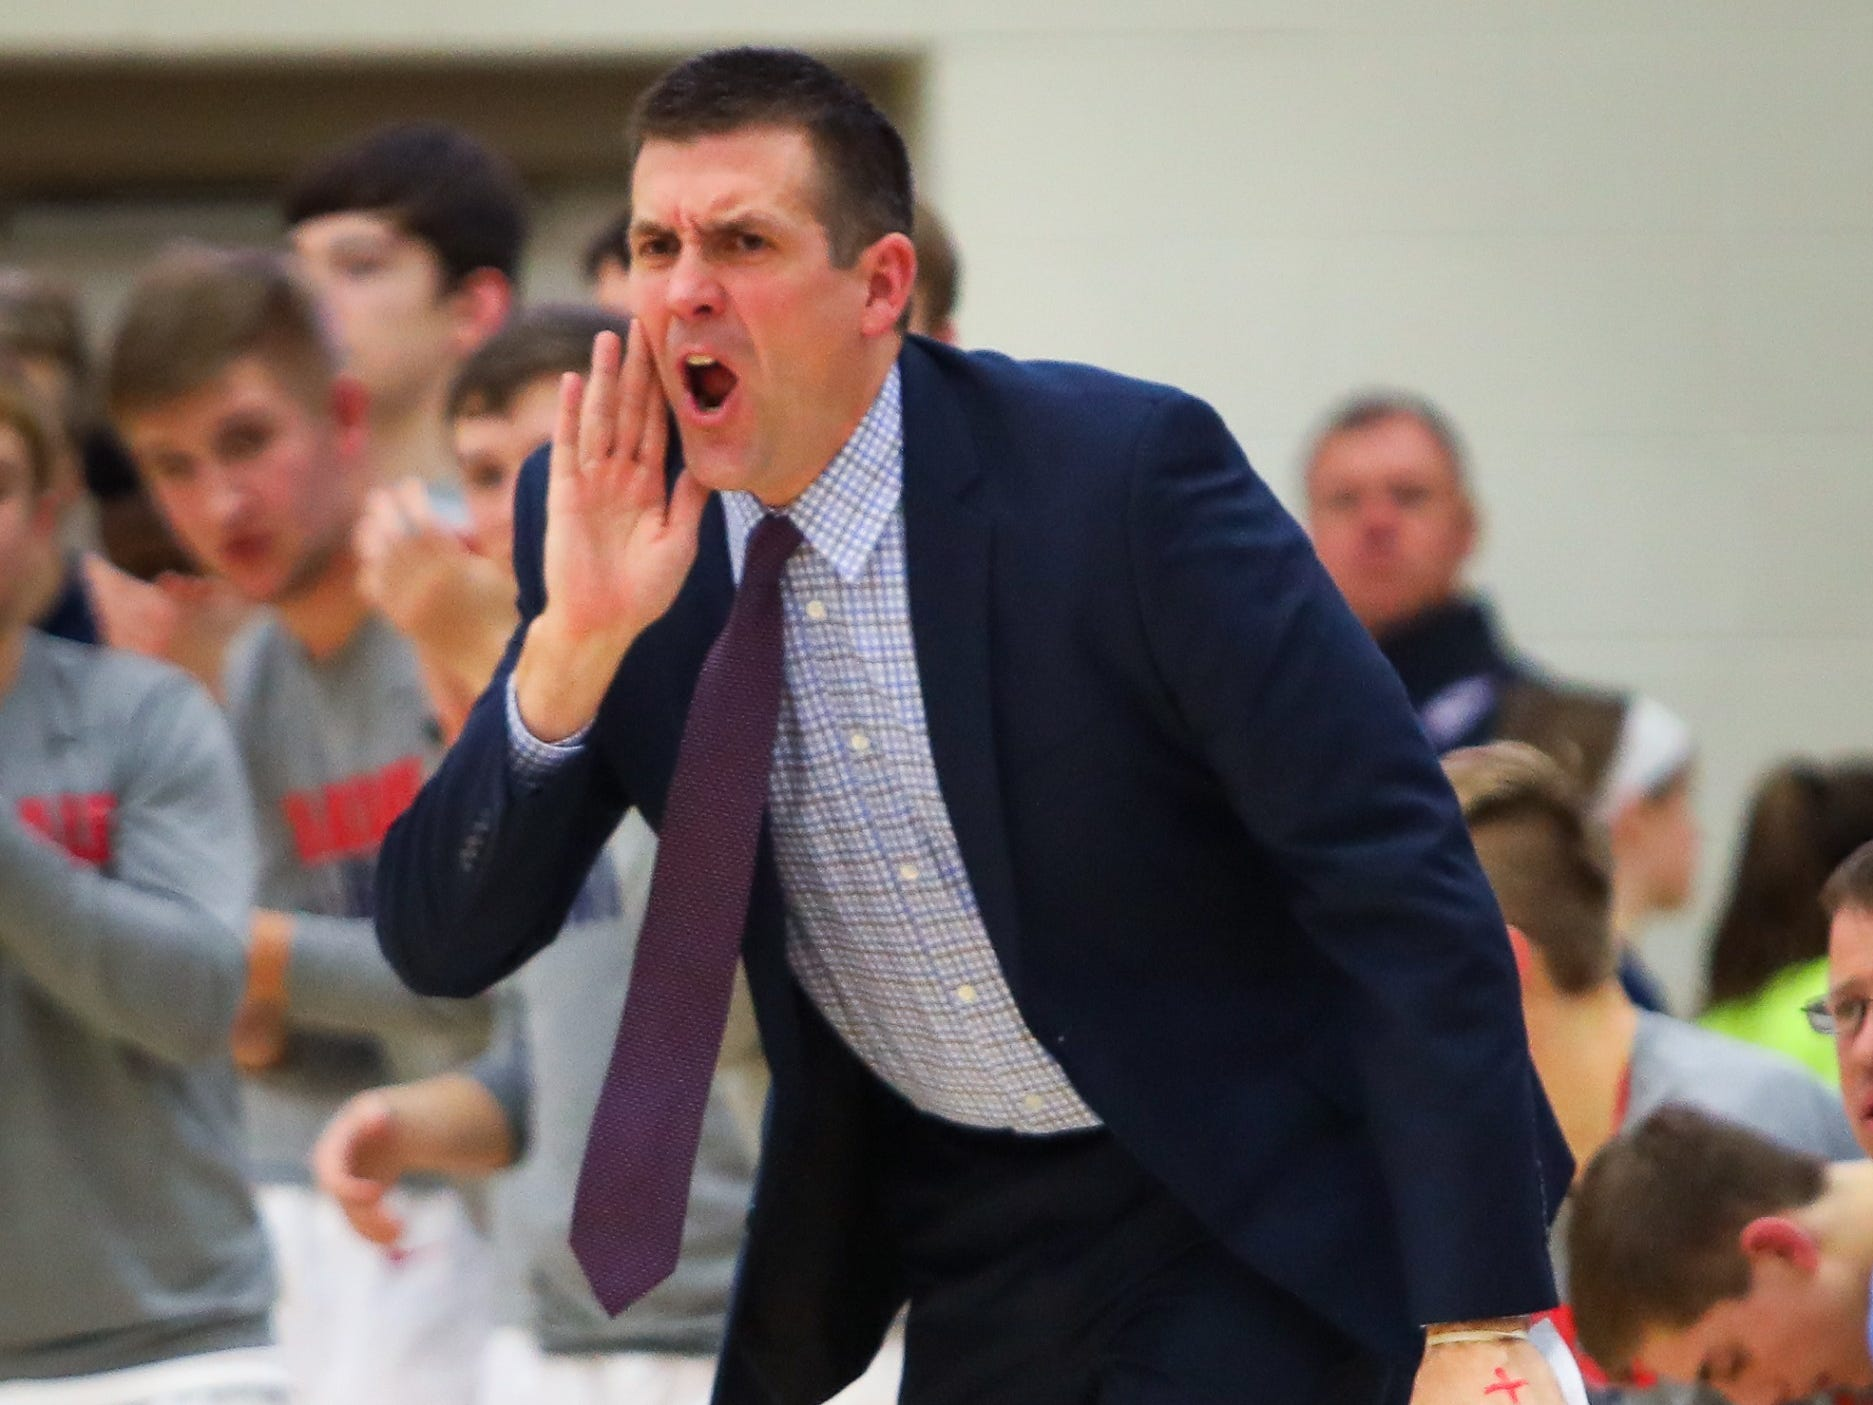 Urbandale head coach Jon Schmitz yells out instructions to his players during a boys high school basketball game between the Johnston Dragons and the Urbandale J-Hawks at Urbandale High School on Dec. 18, 2018 in Urbandale, Iowa.